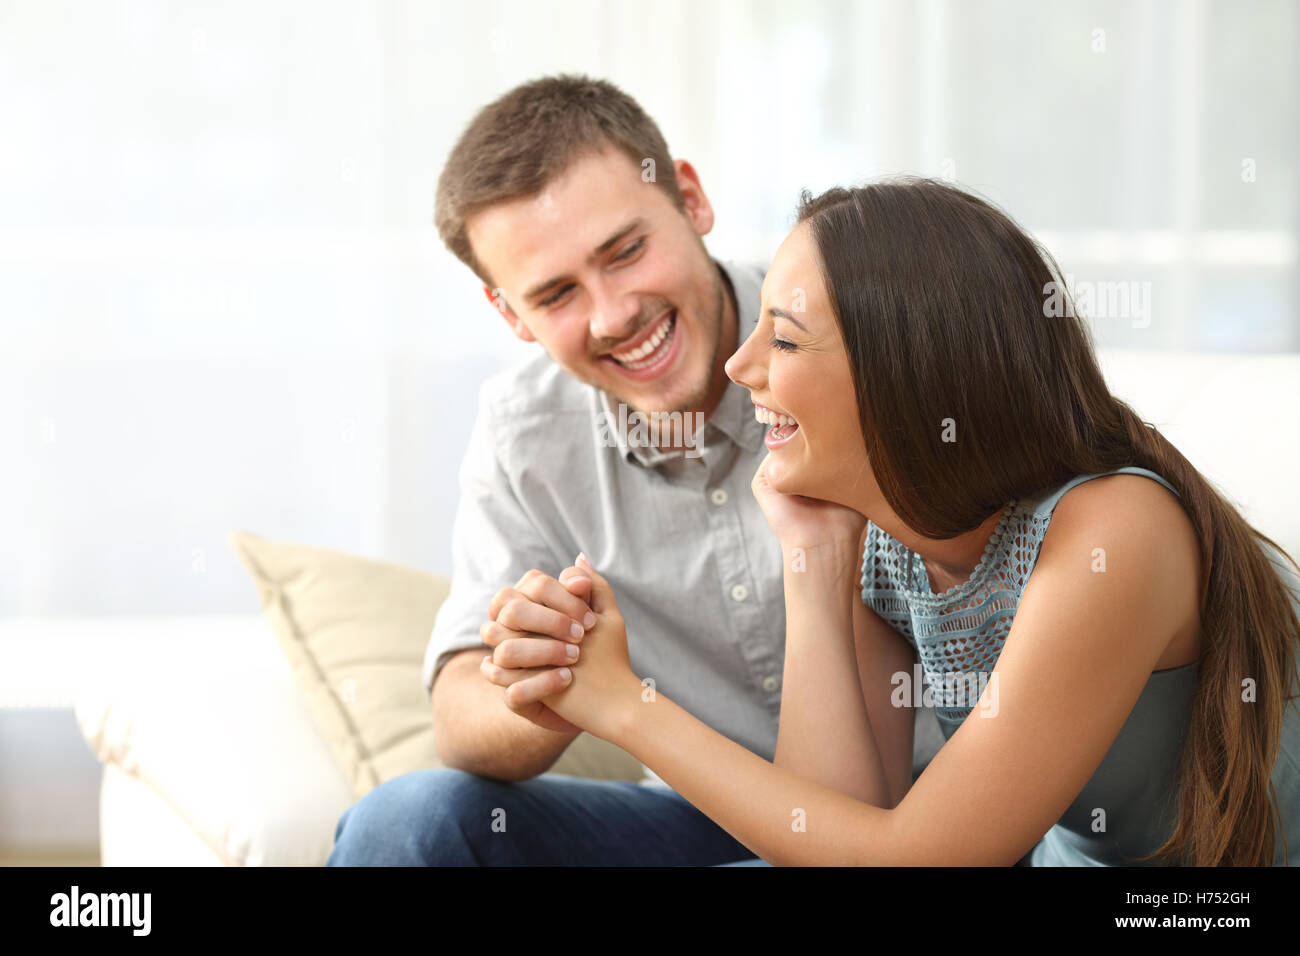 Happy couple or marriage looking each other laughing and holding hands sitting on a sofa at home - Stock Image